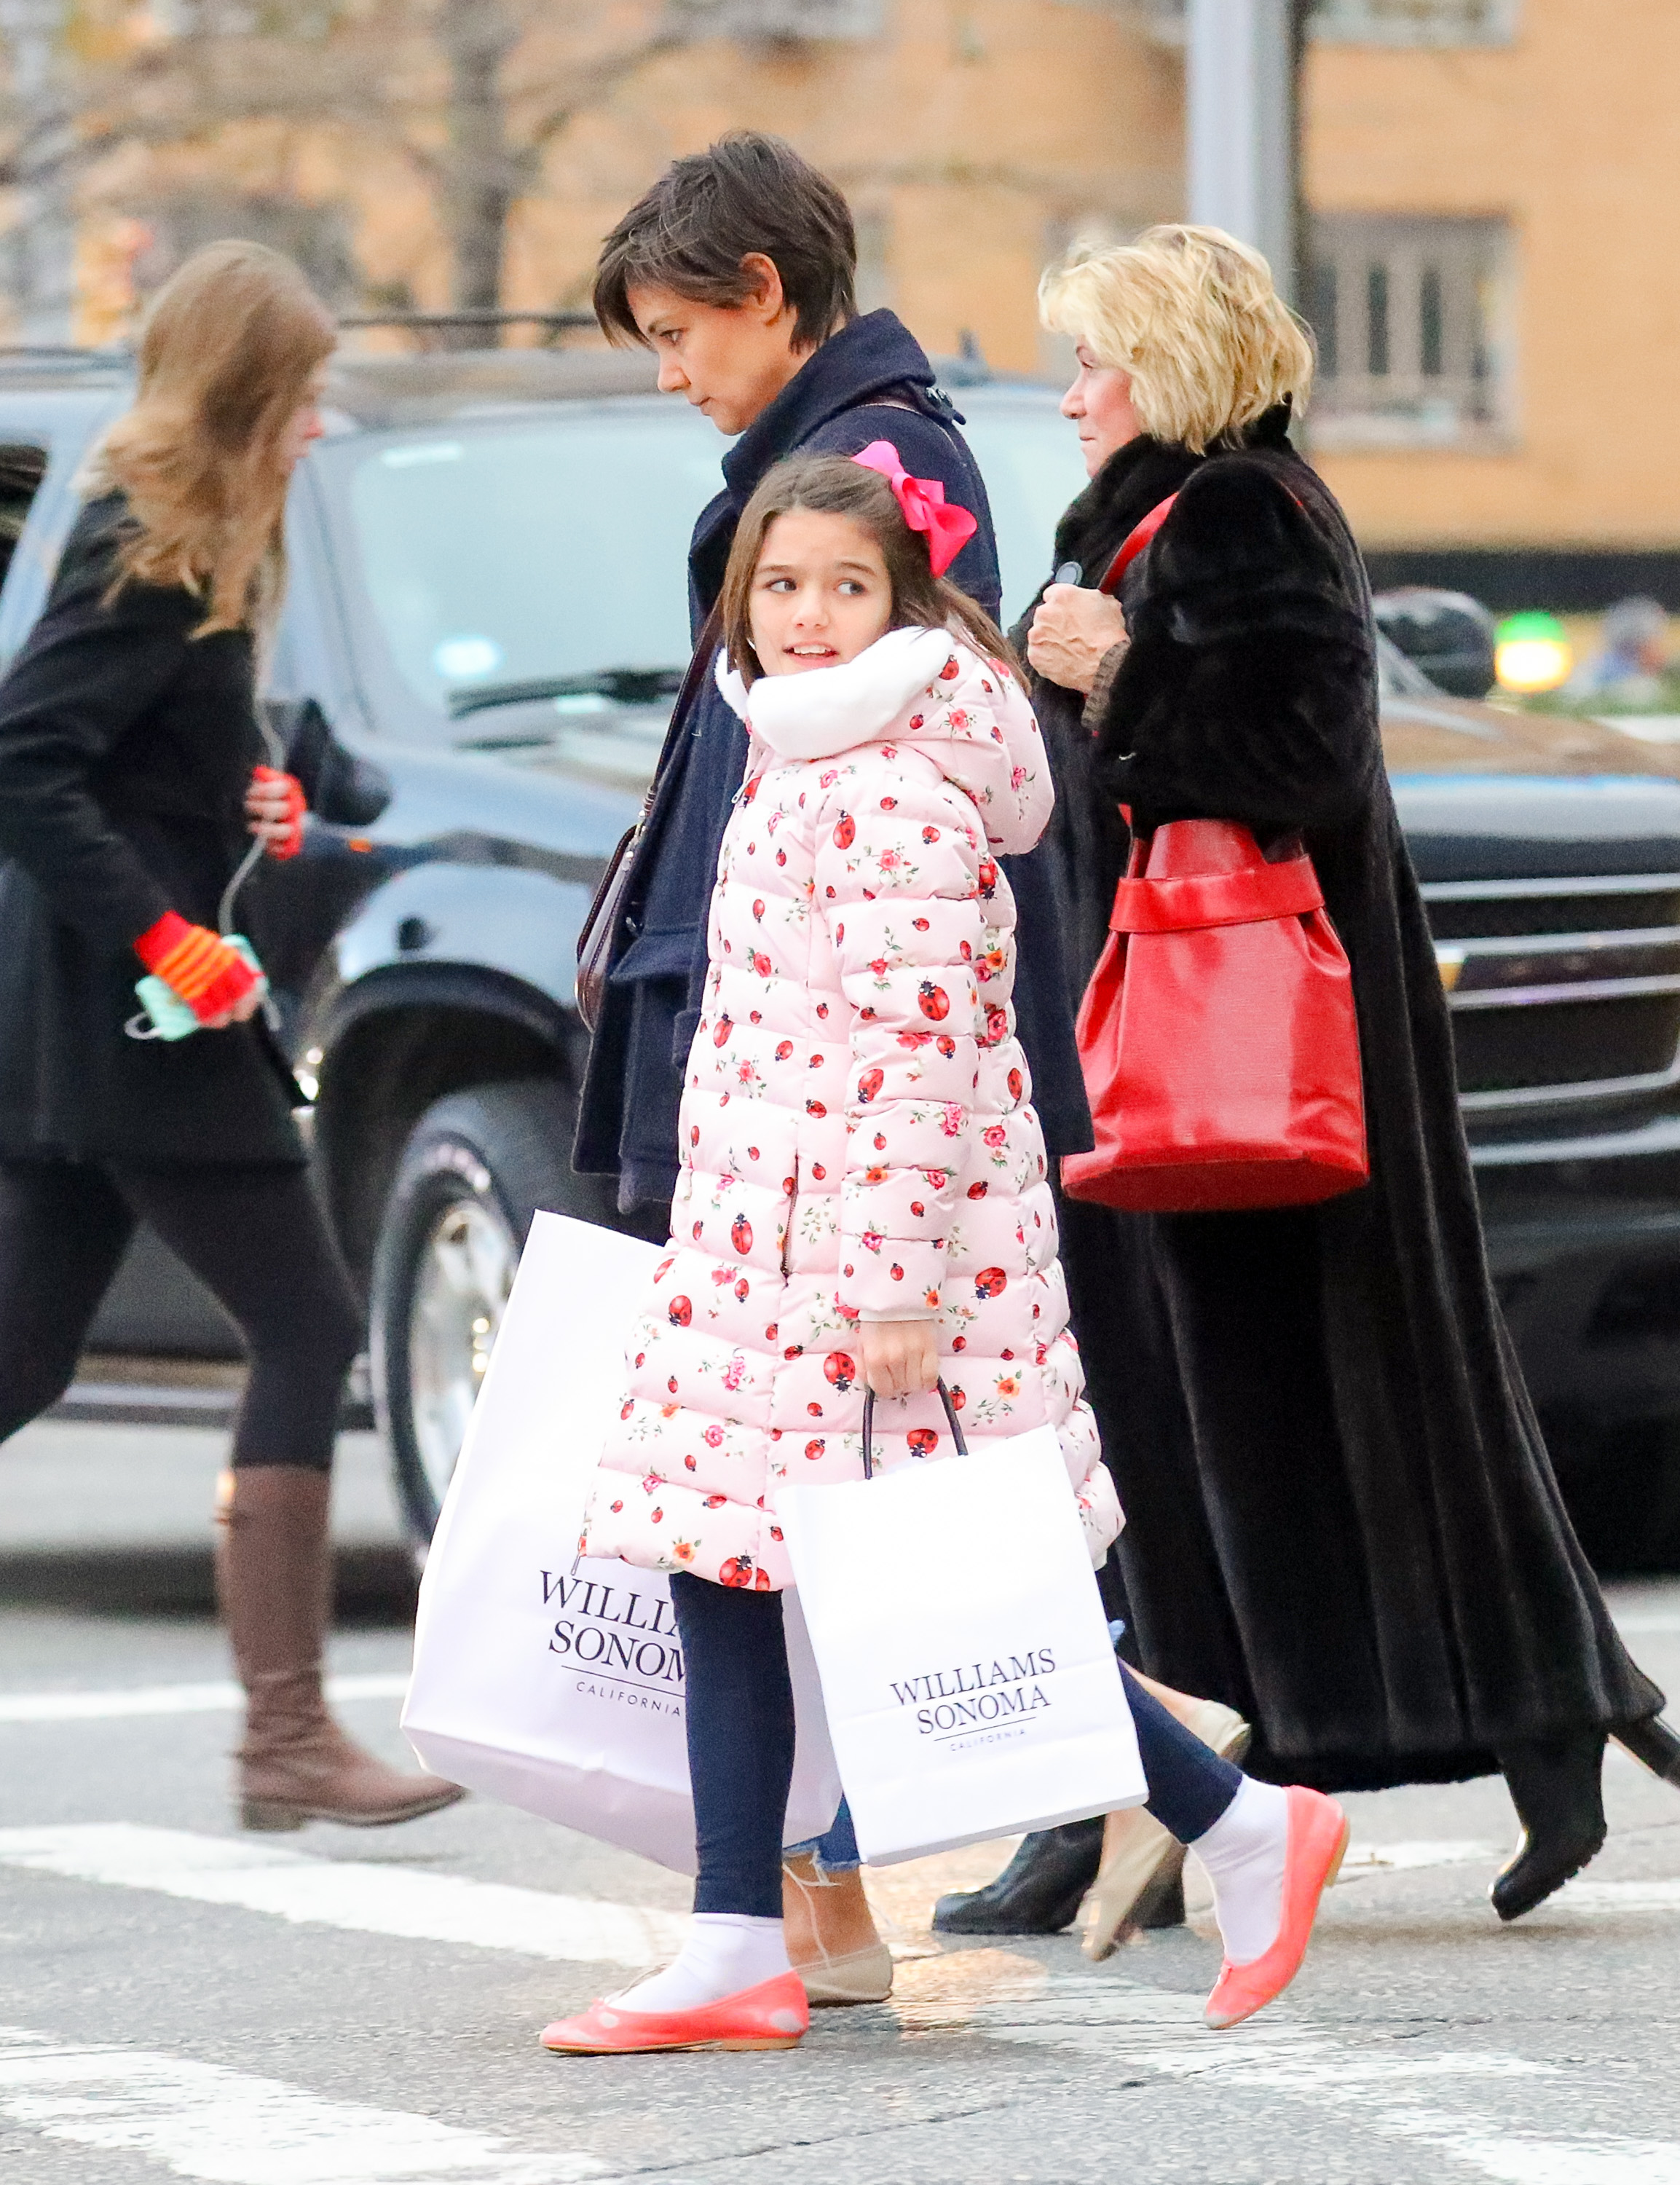 EXCLUSIVE: Katie Holmes and Suri Cruise visit Williams-Sonoma to get some to make cookies, as later Katie posted on her Instagram <P> Pictured: Katie Holmes and Suri Cruise <B>Ref: SPL1632695  041217   EXCLUSIVE</B><BR/> Picture by: Felipe Ramales / Splash News<BR/> </P><P> <B>Splash News and Pictures</B><BR/> Los Angeles:310-821-2666<BR/> New York:212-619-2666<BR/> London:870-934-2666<BR/> <span id=